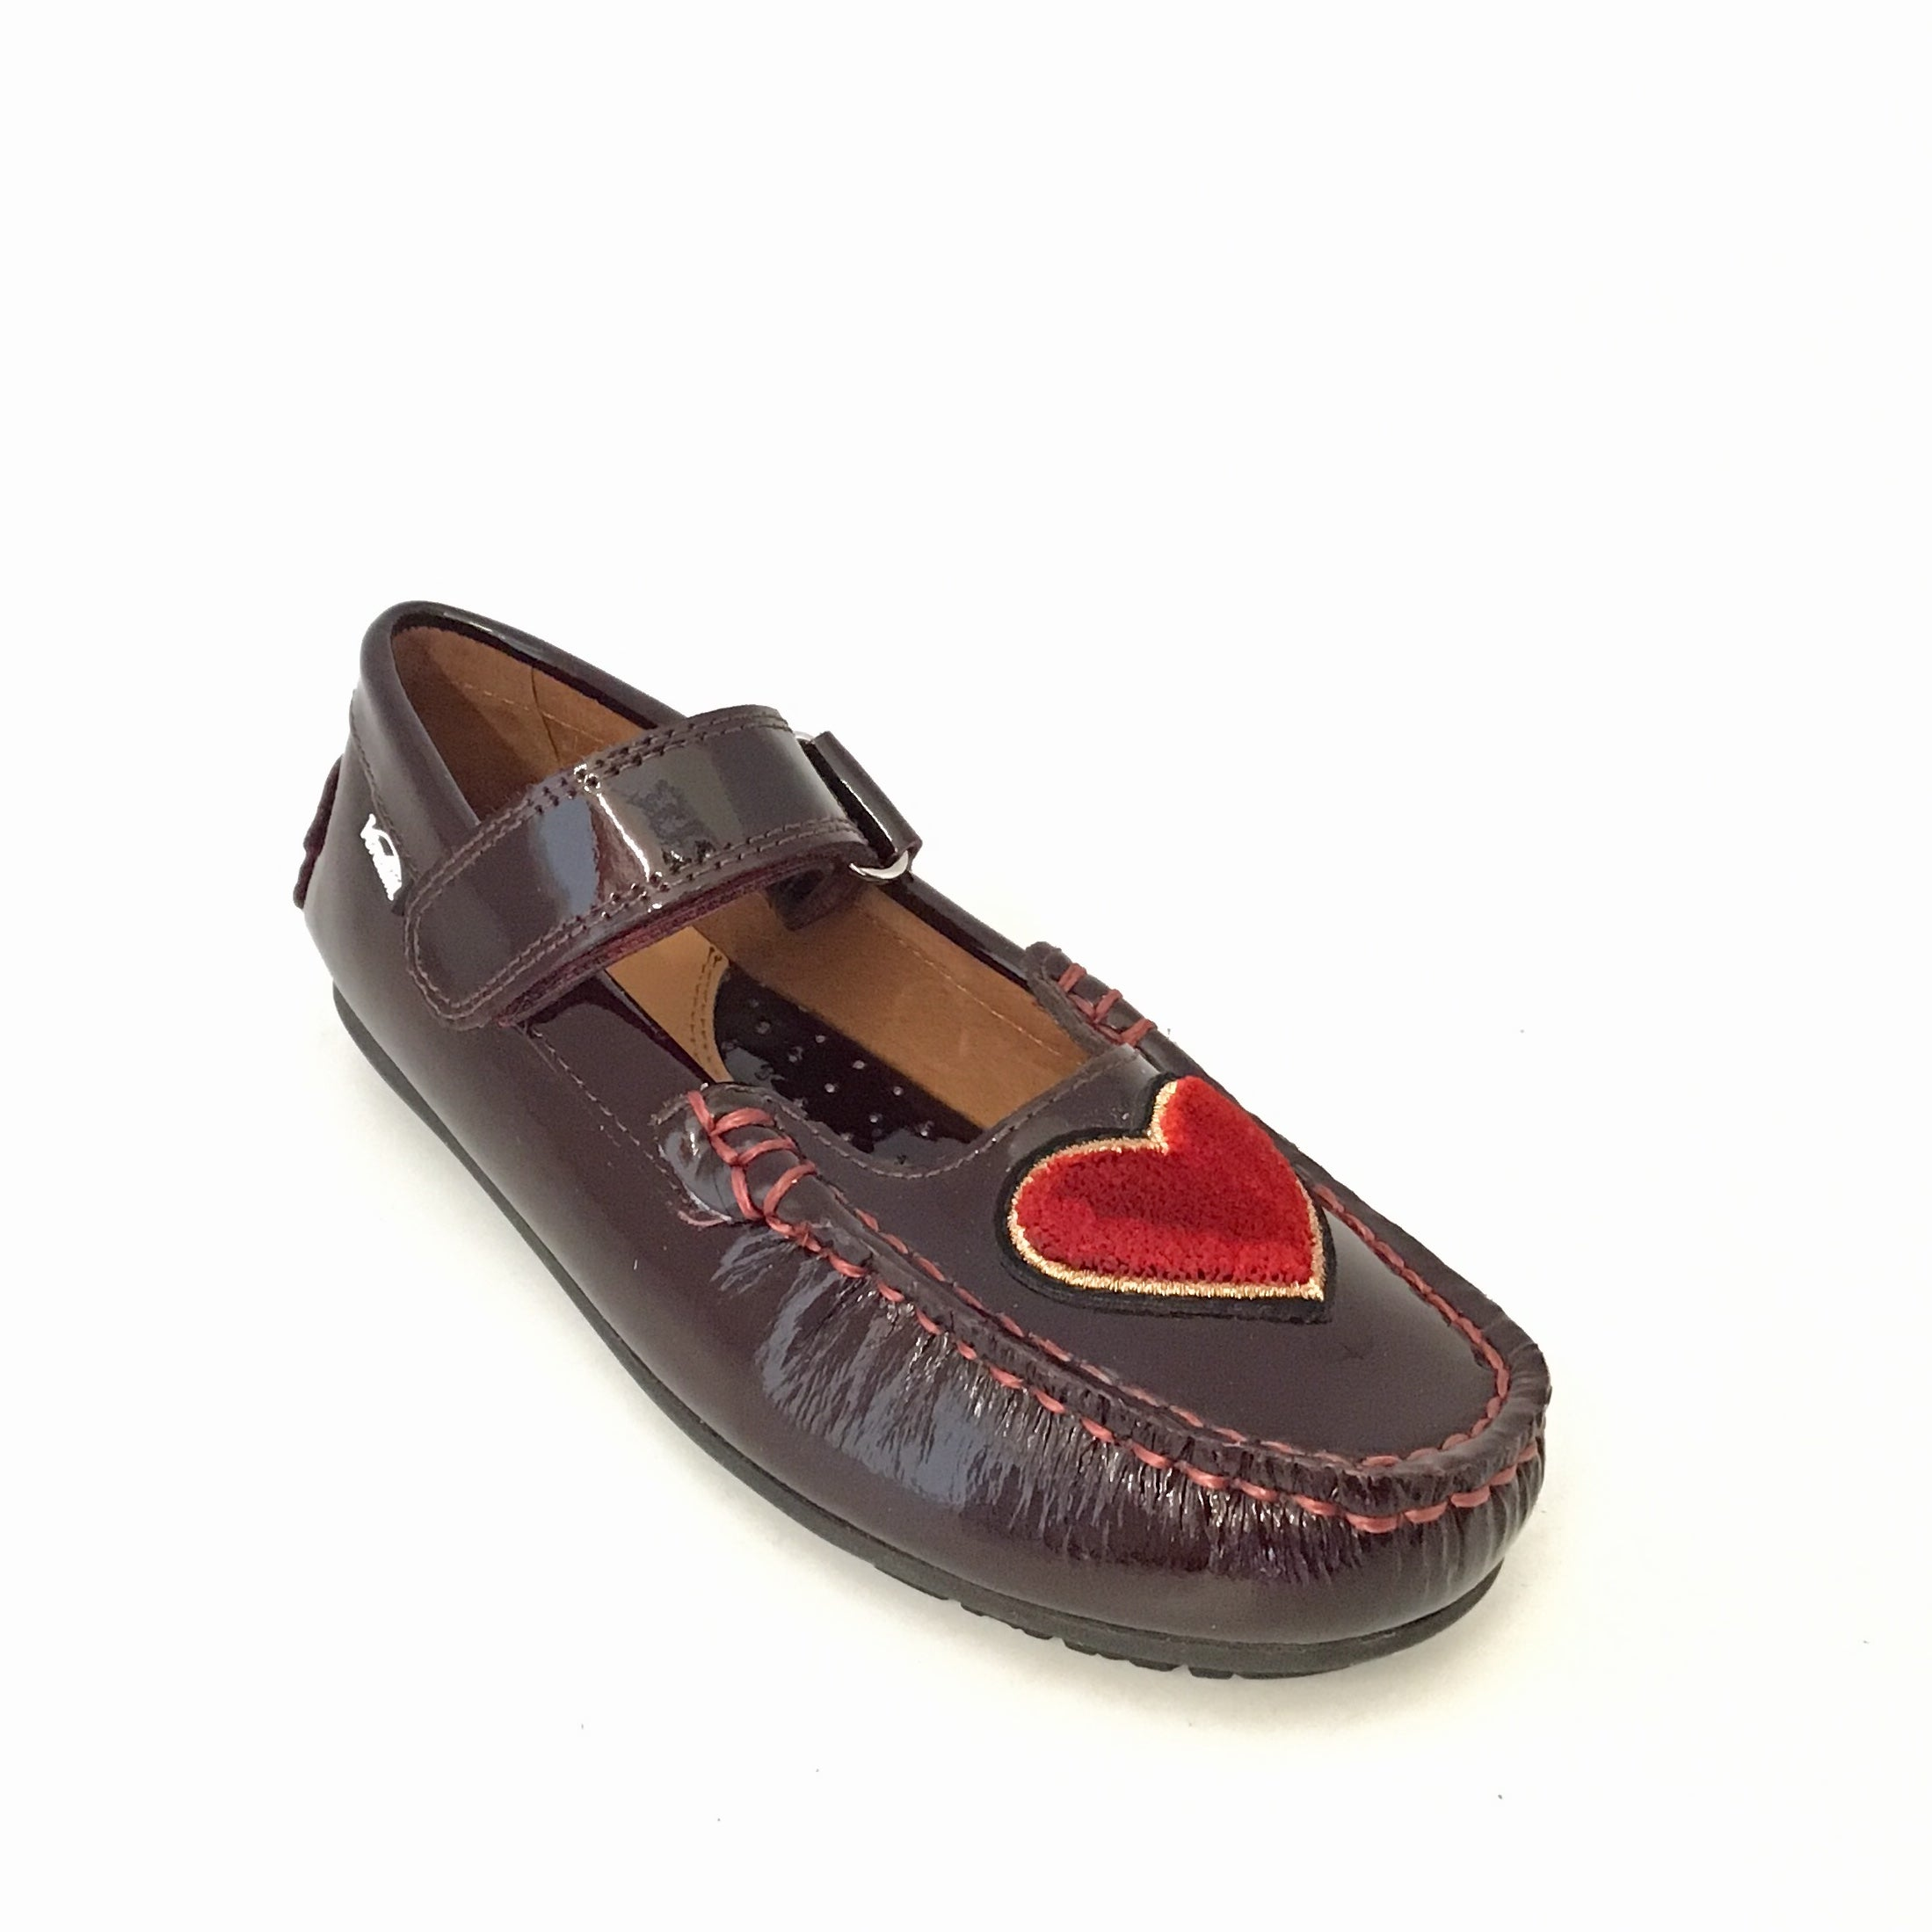 Venettini Bordeaux Patent Velcro Shoe with Heart